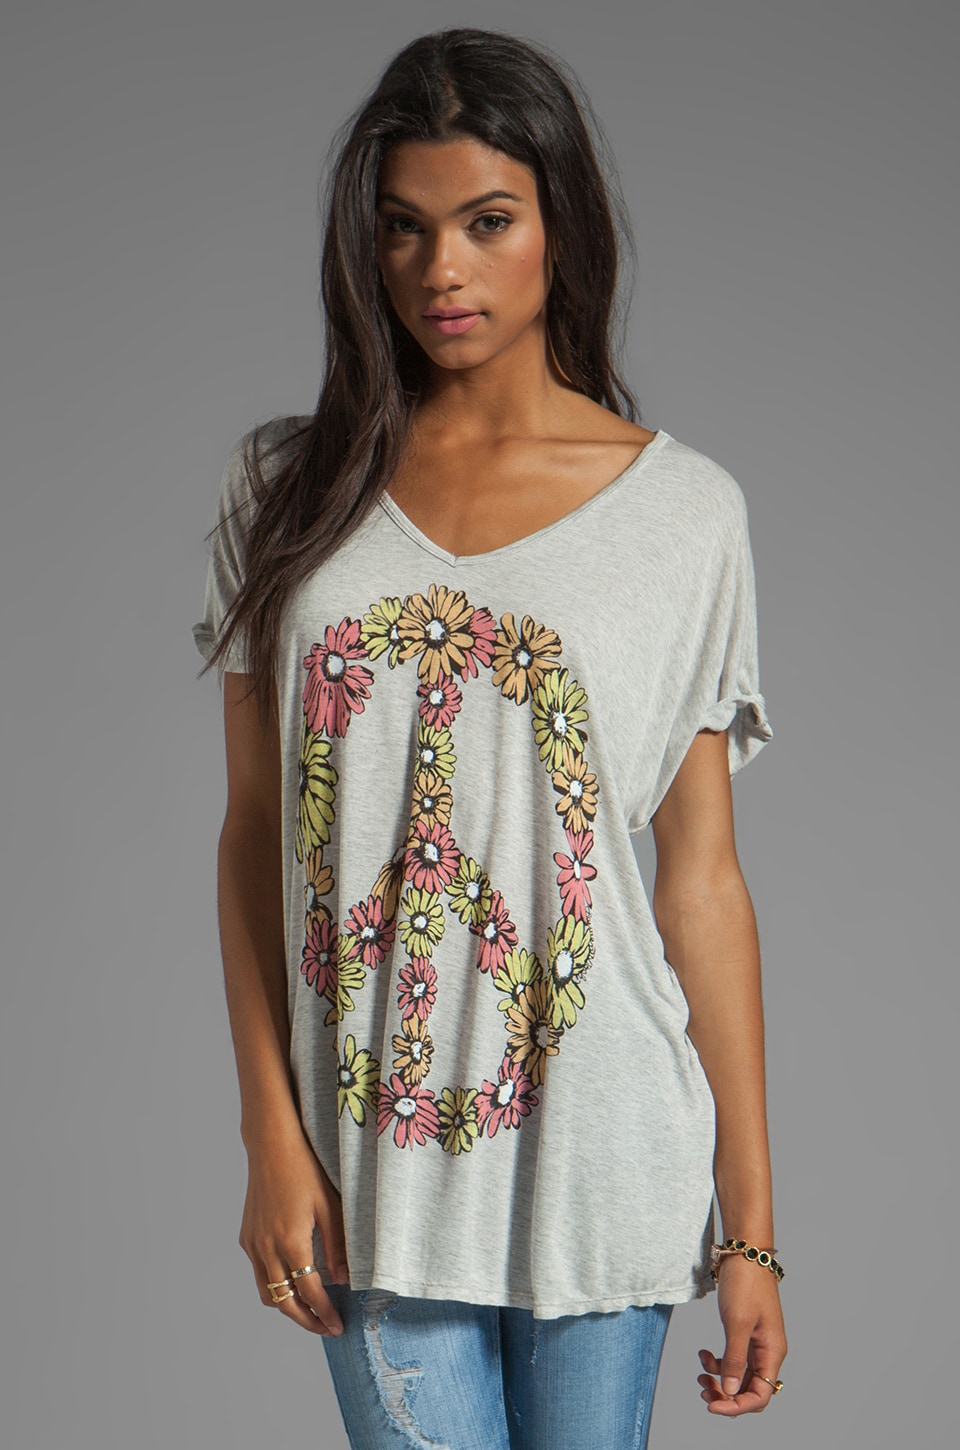 Lauren Moshi April Color Peace Daisy Oversized Tee in Pearl